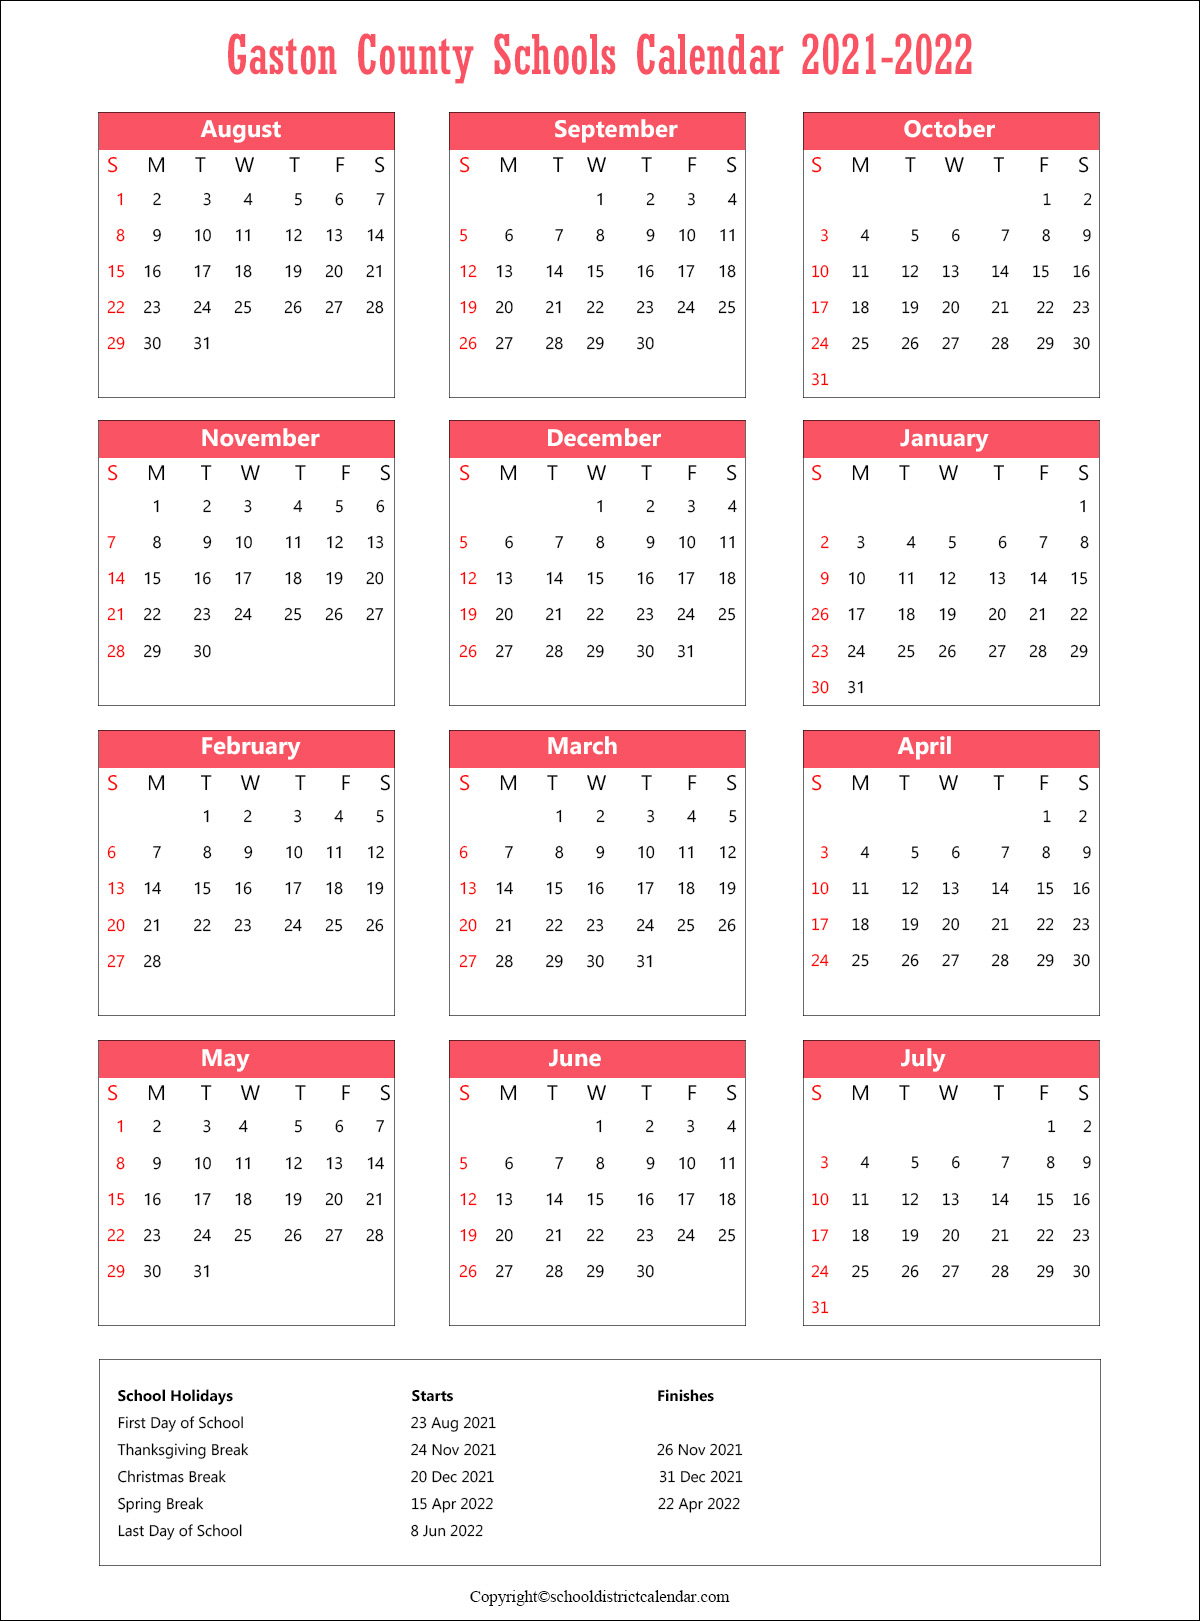 Gaston County Schools District, North Carolina Calendar Holidays 2021